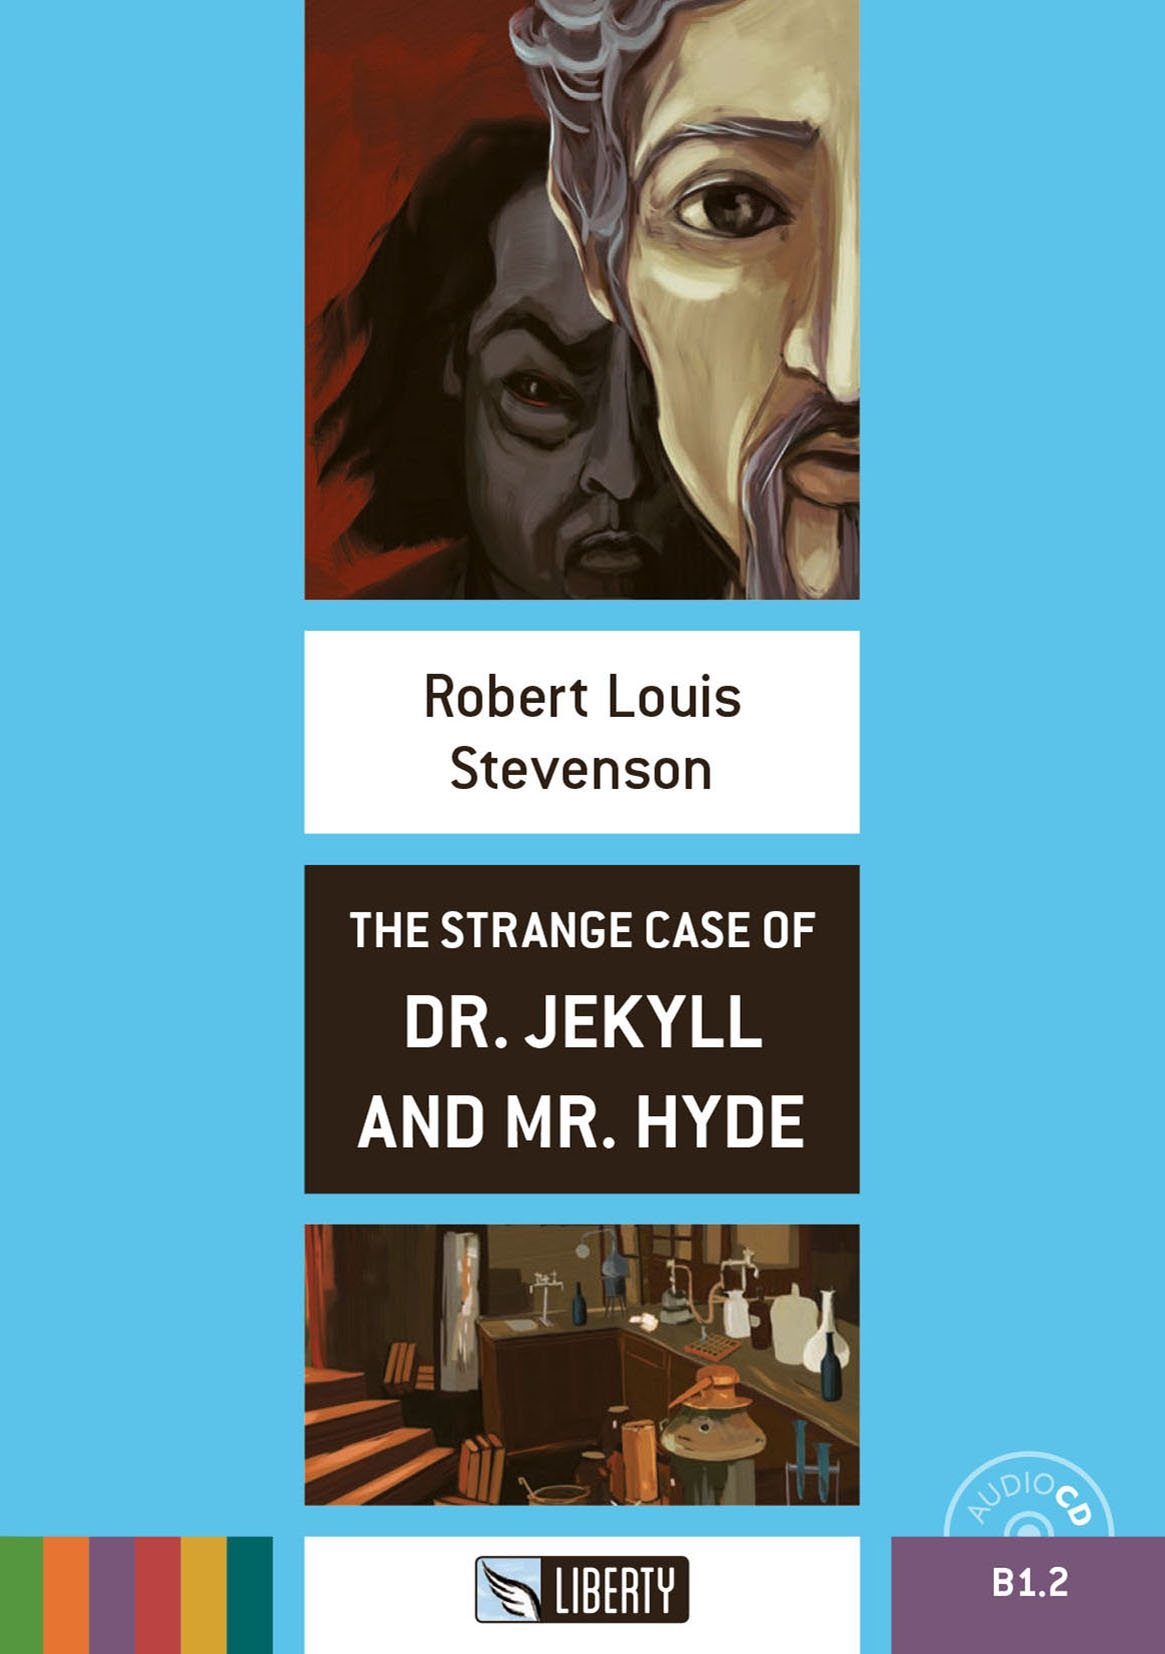 an analysis of three problems caused by dr jekyll and mr hyde in the strange case of dr jekyll and m